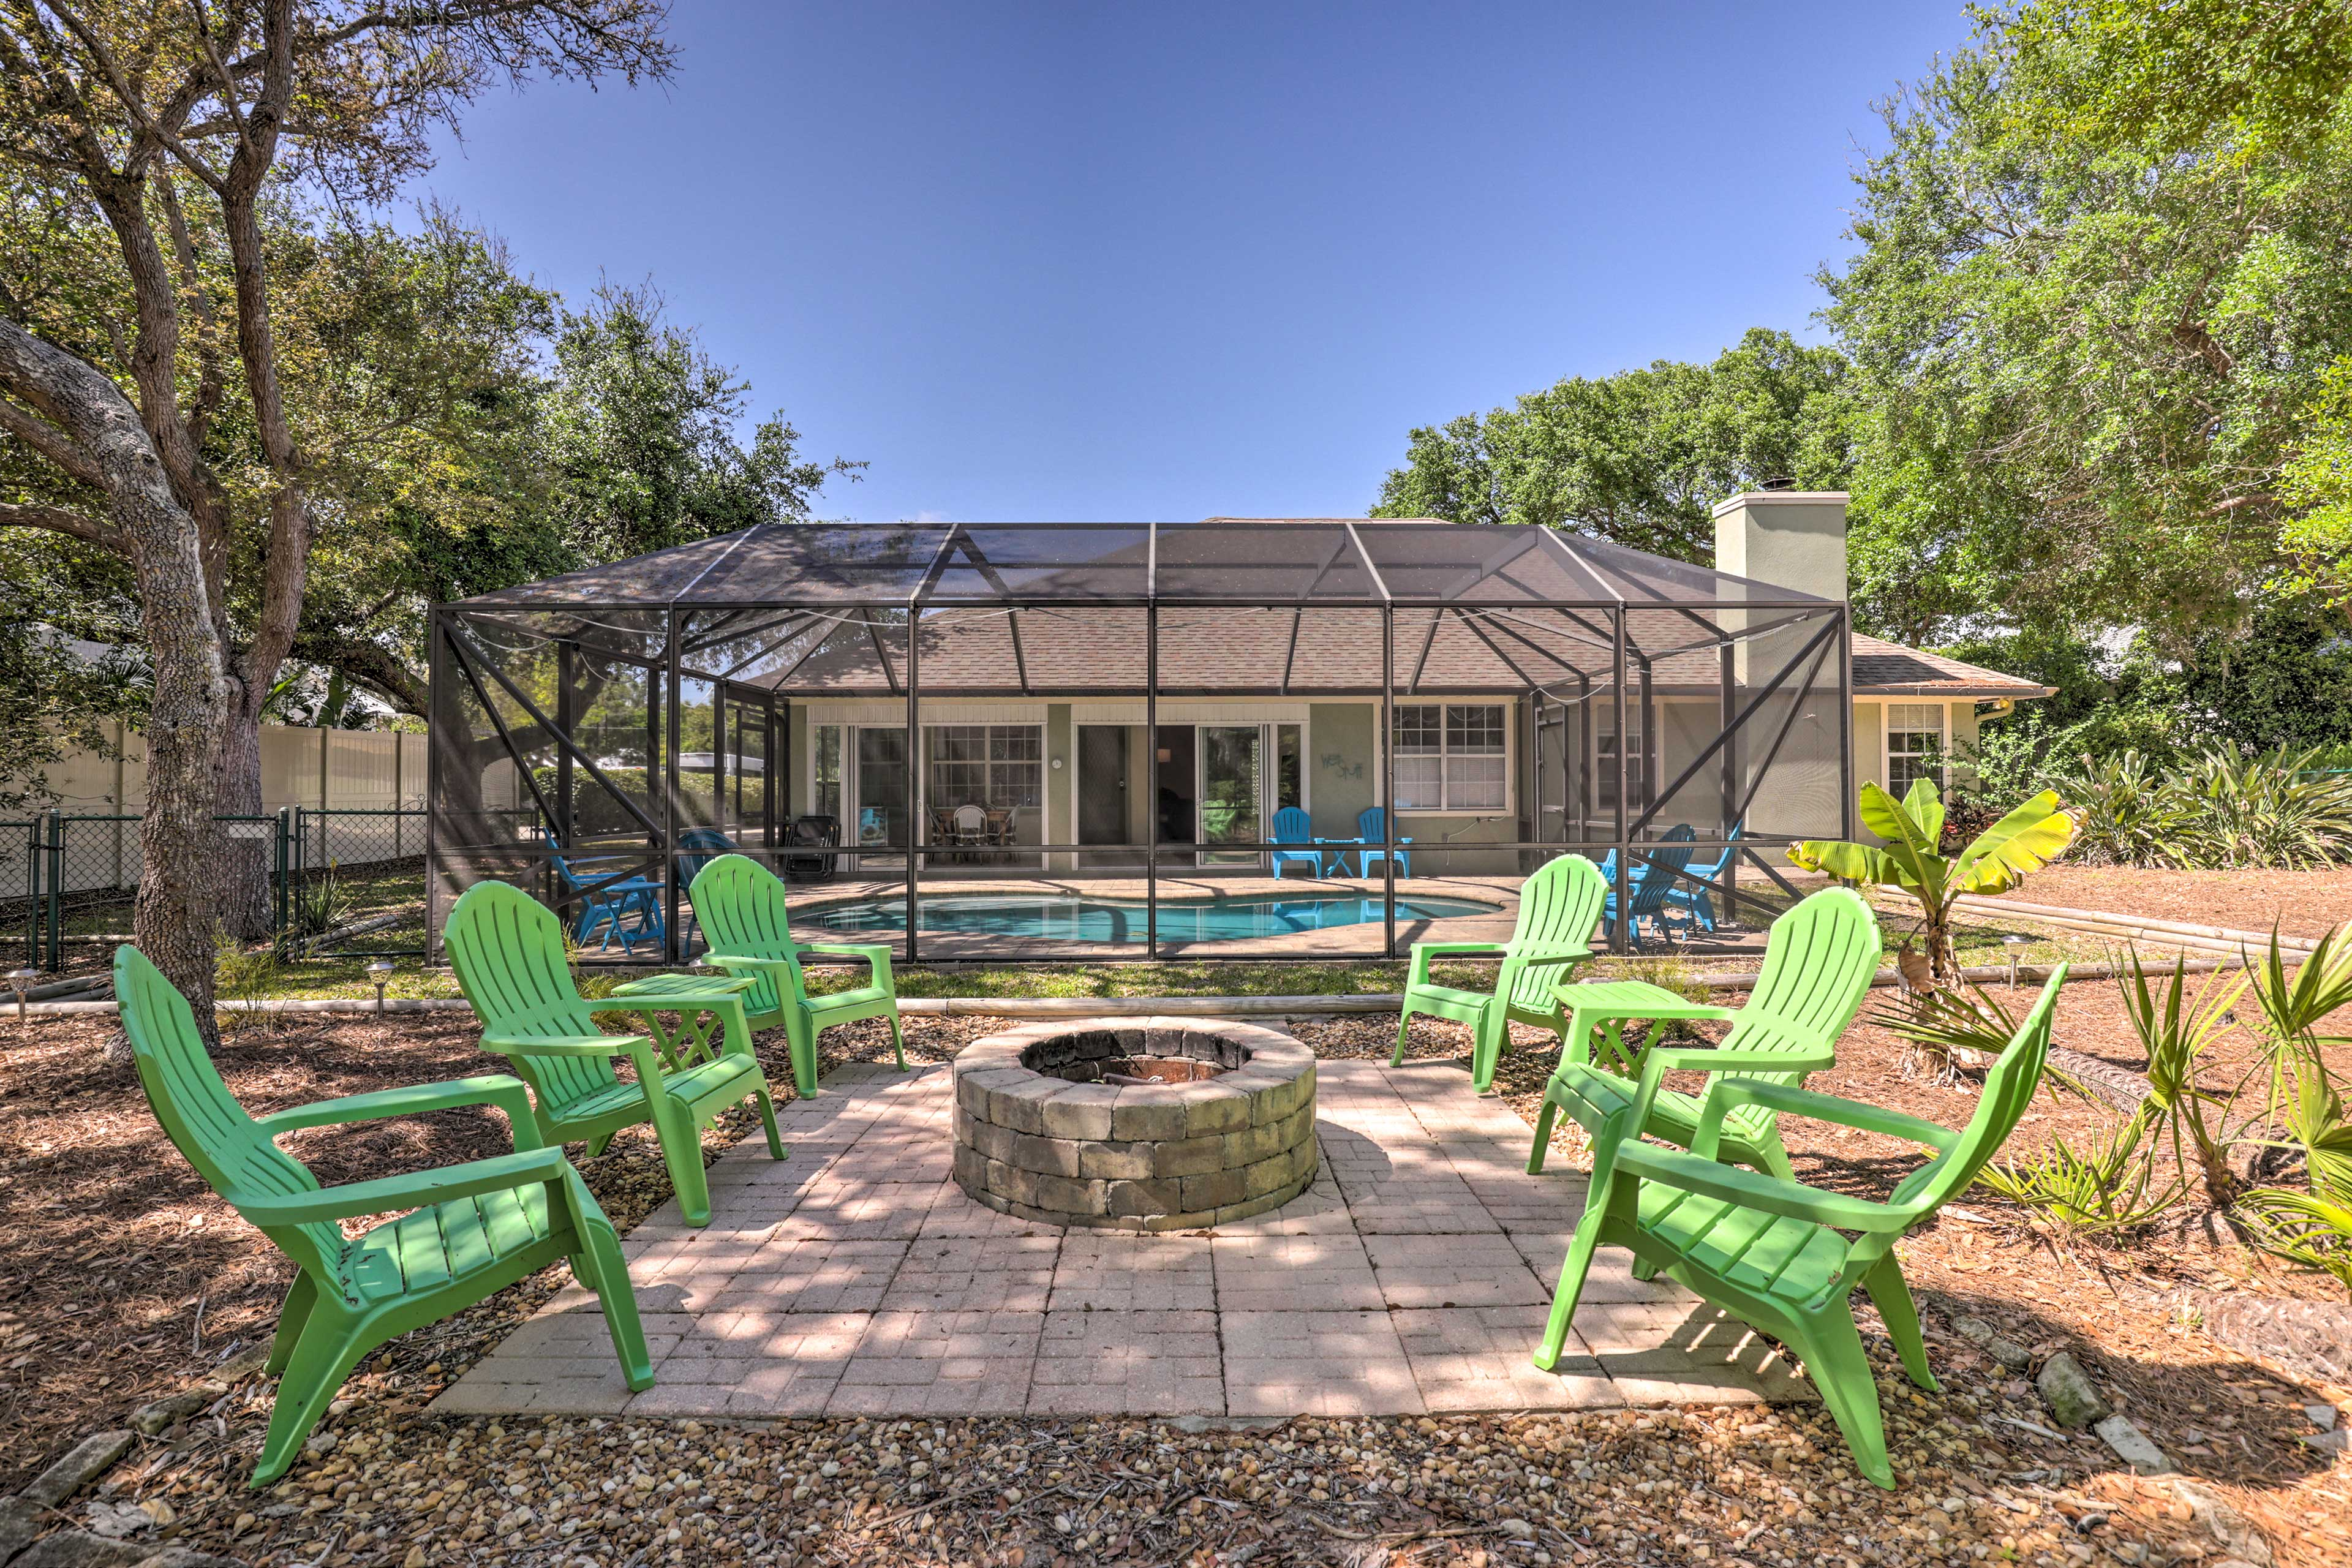 This vacation rental home in within walking distance to the beach.